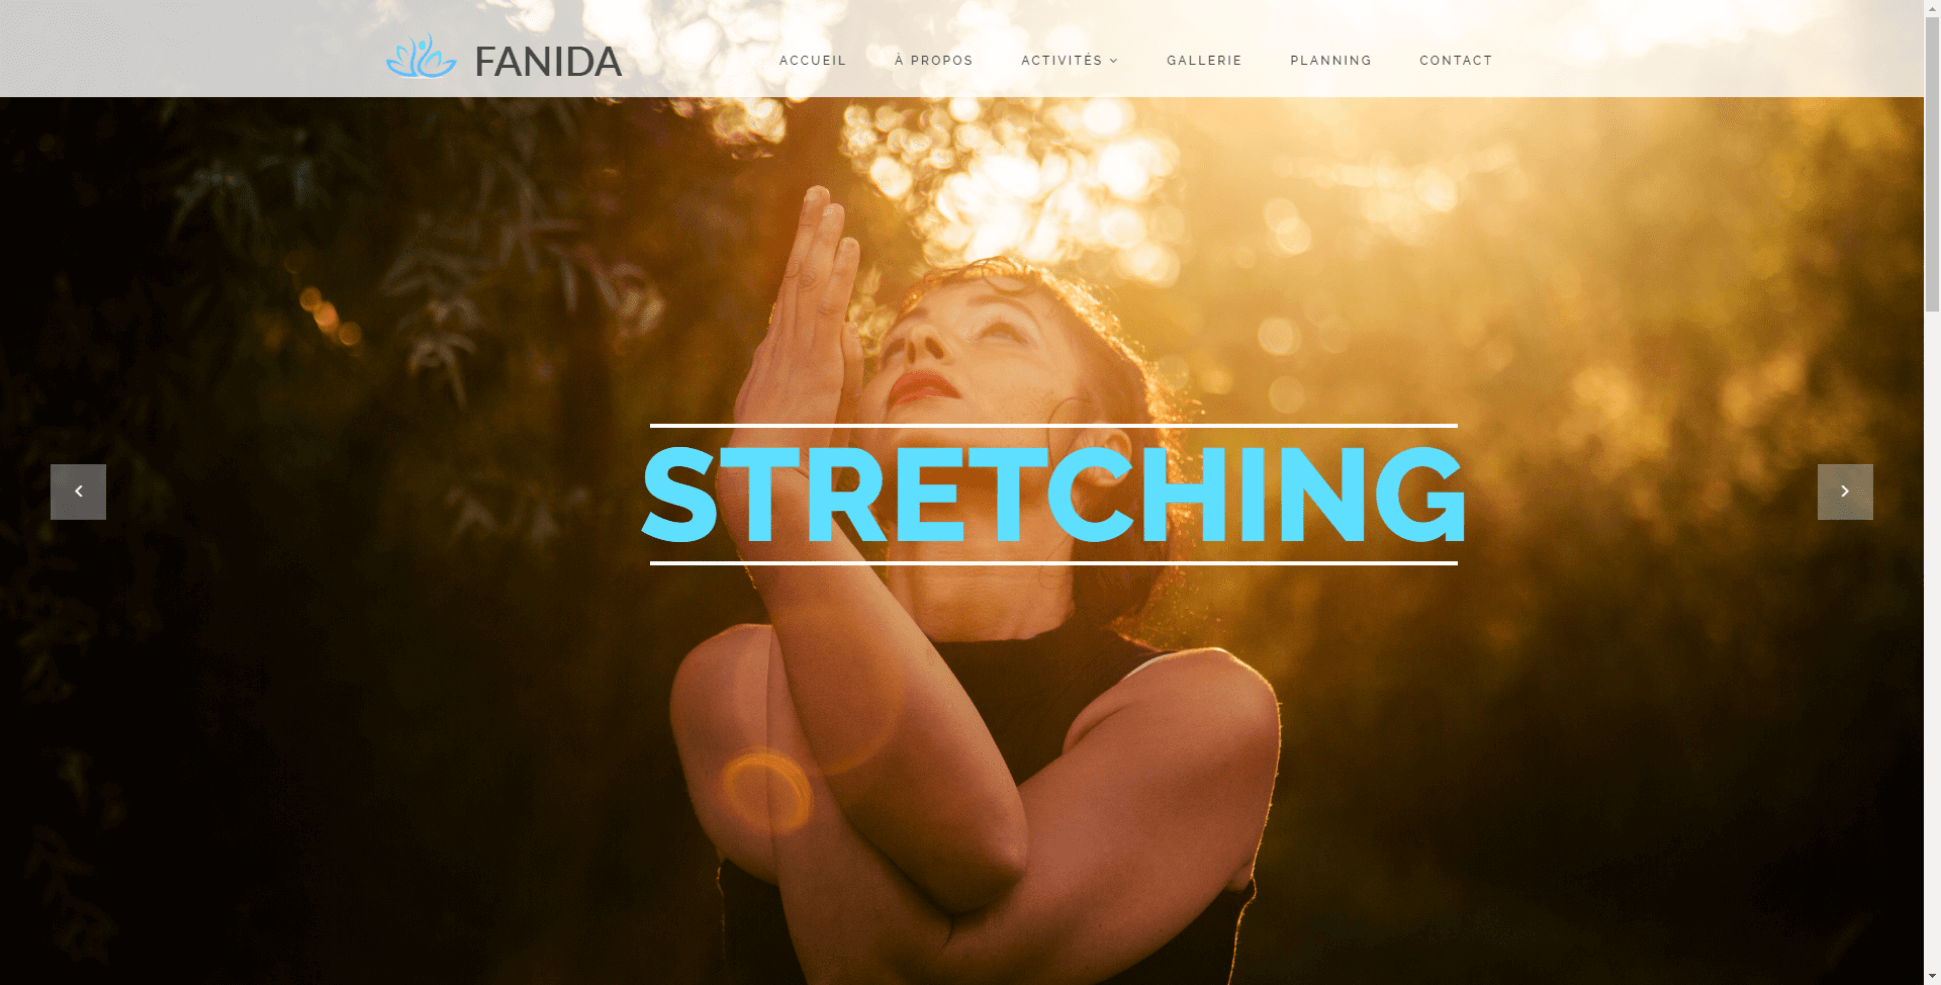 fanidab-website